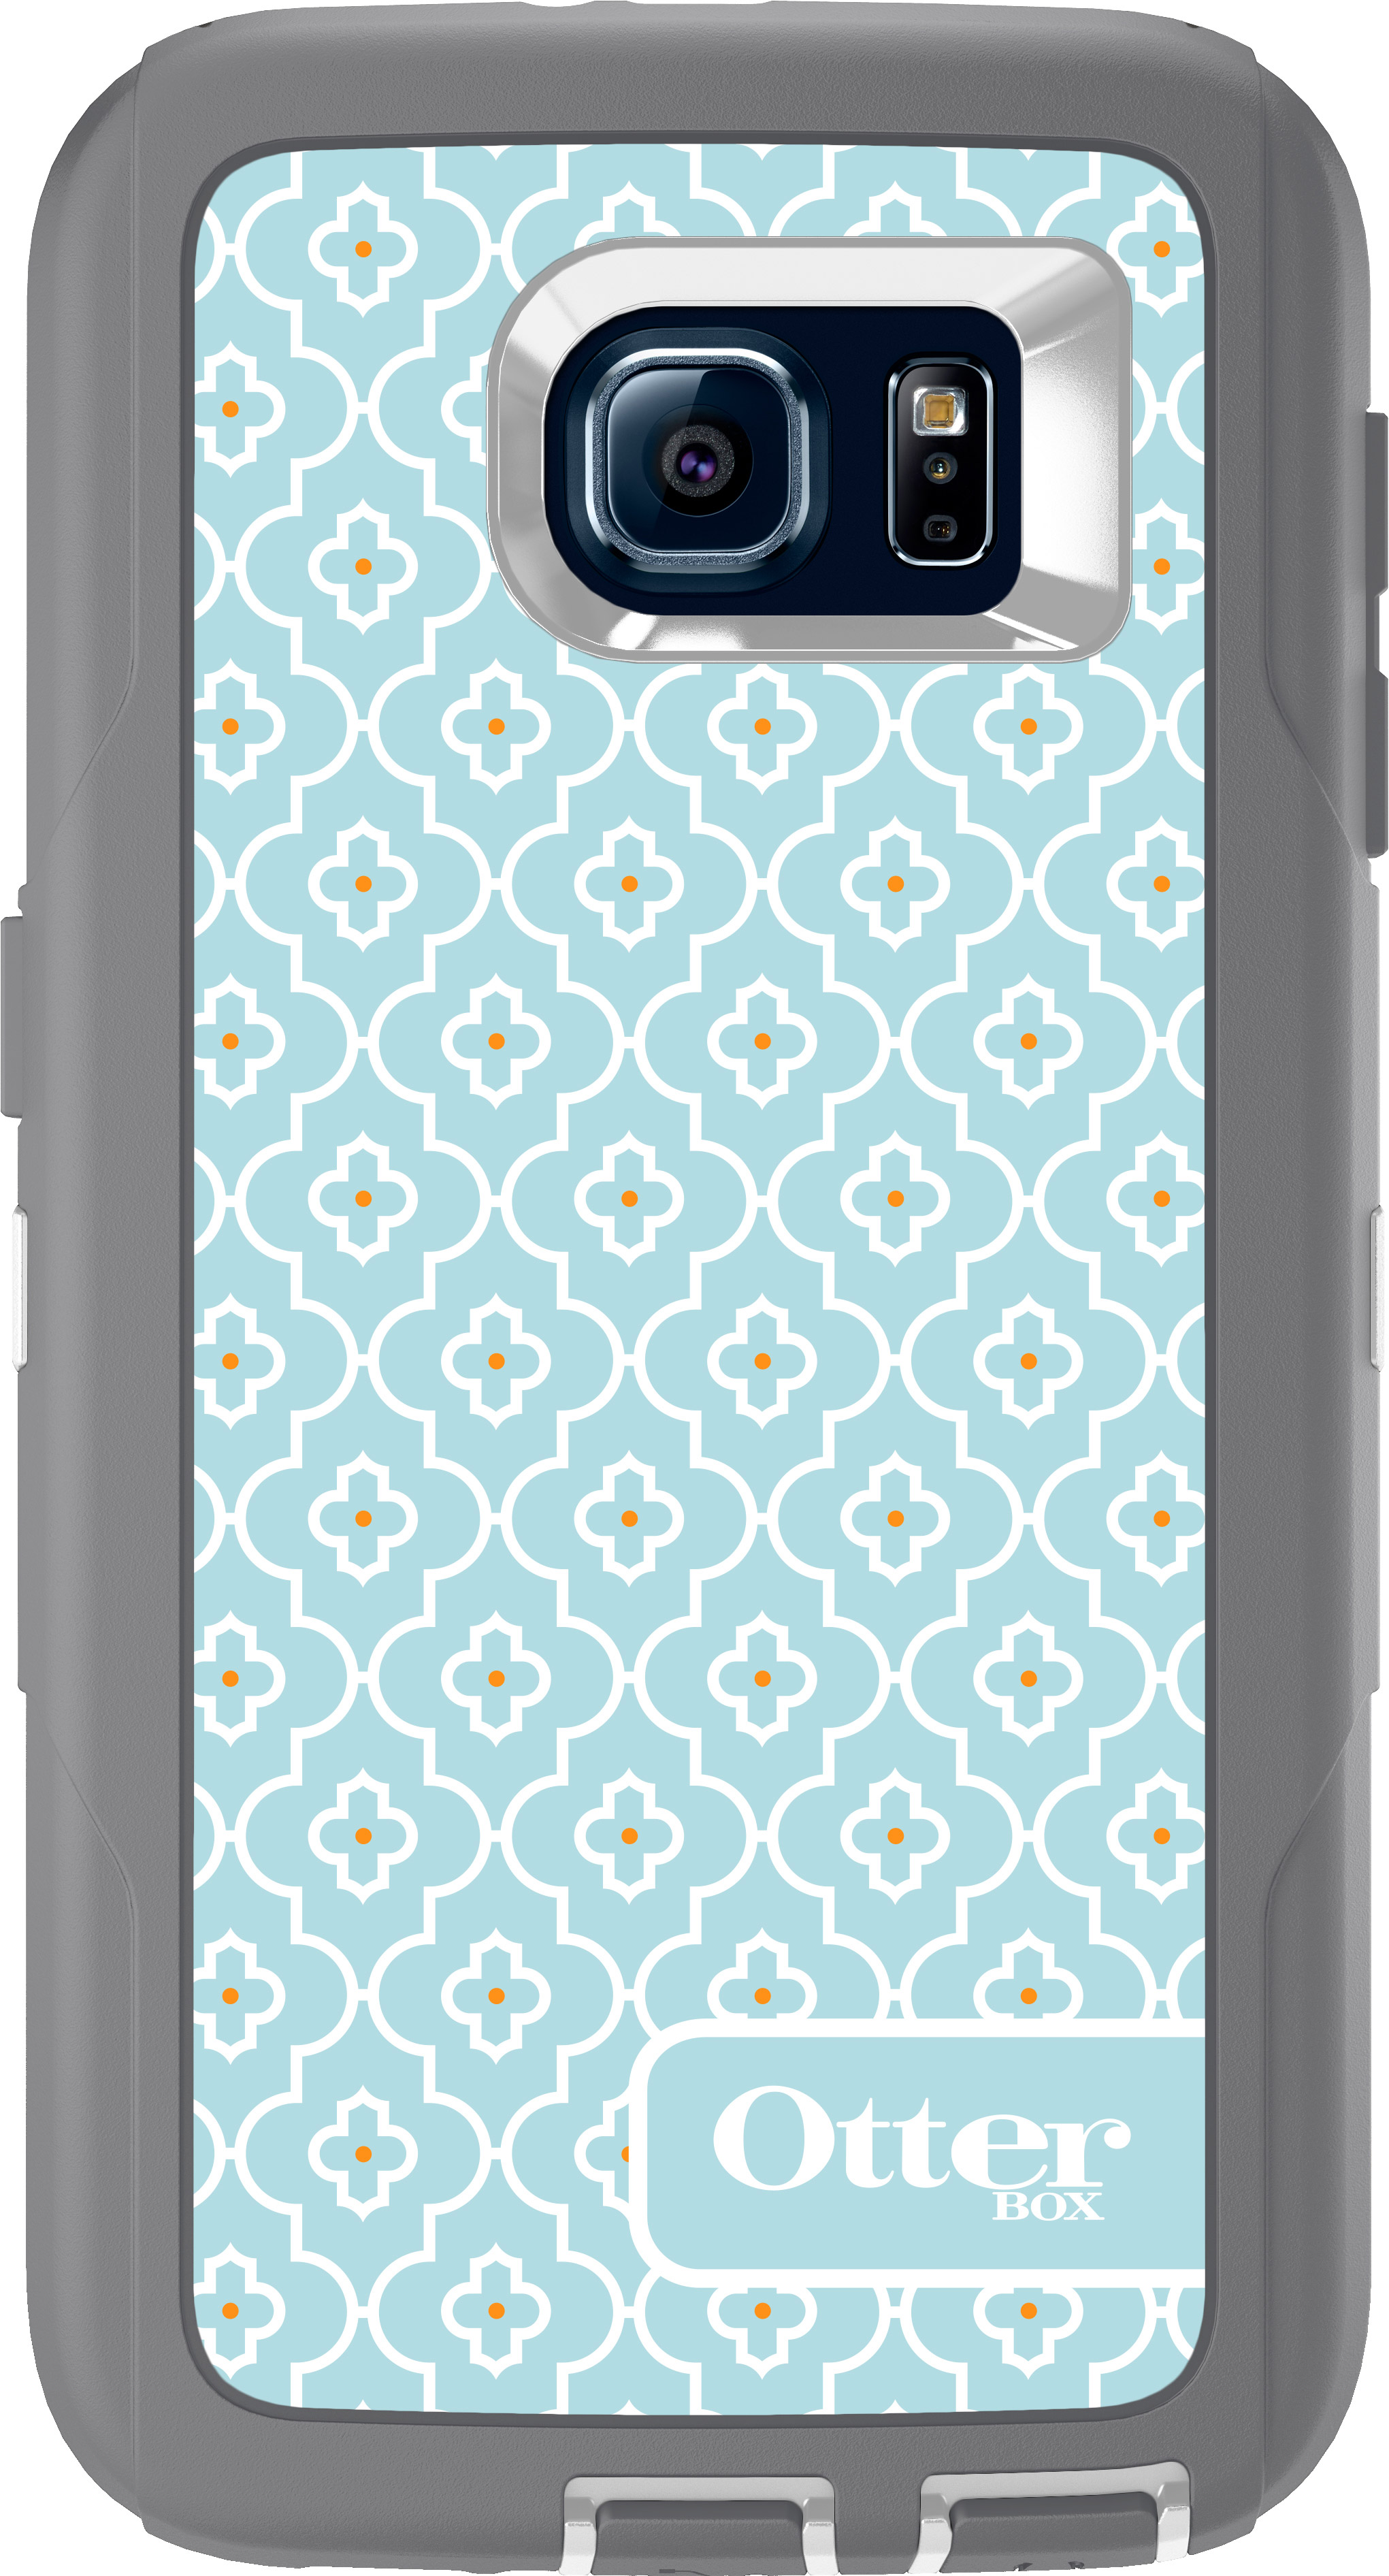 OtterBox Defender Series for Samsung GALAXY S6